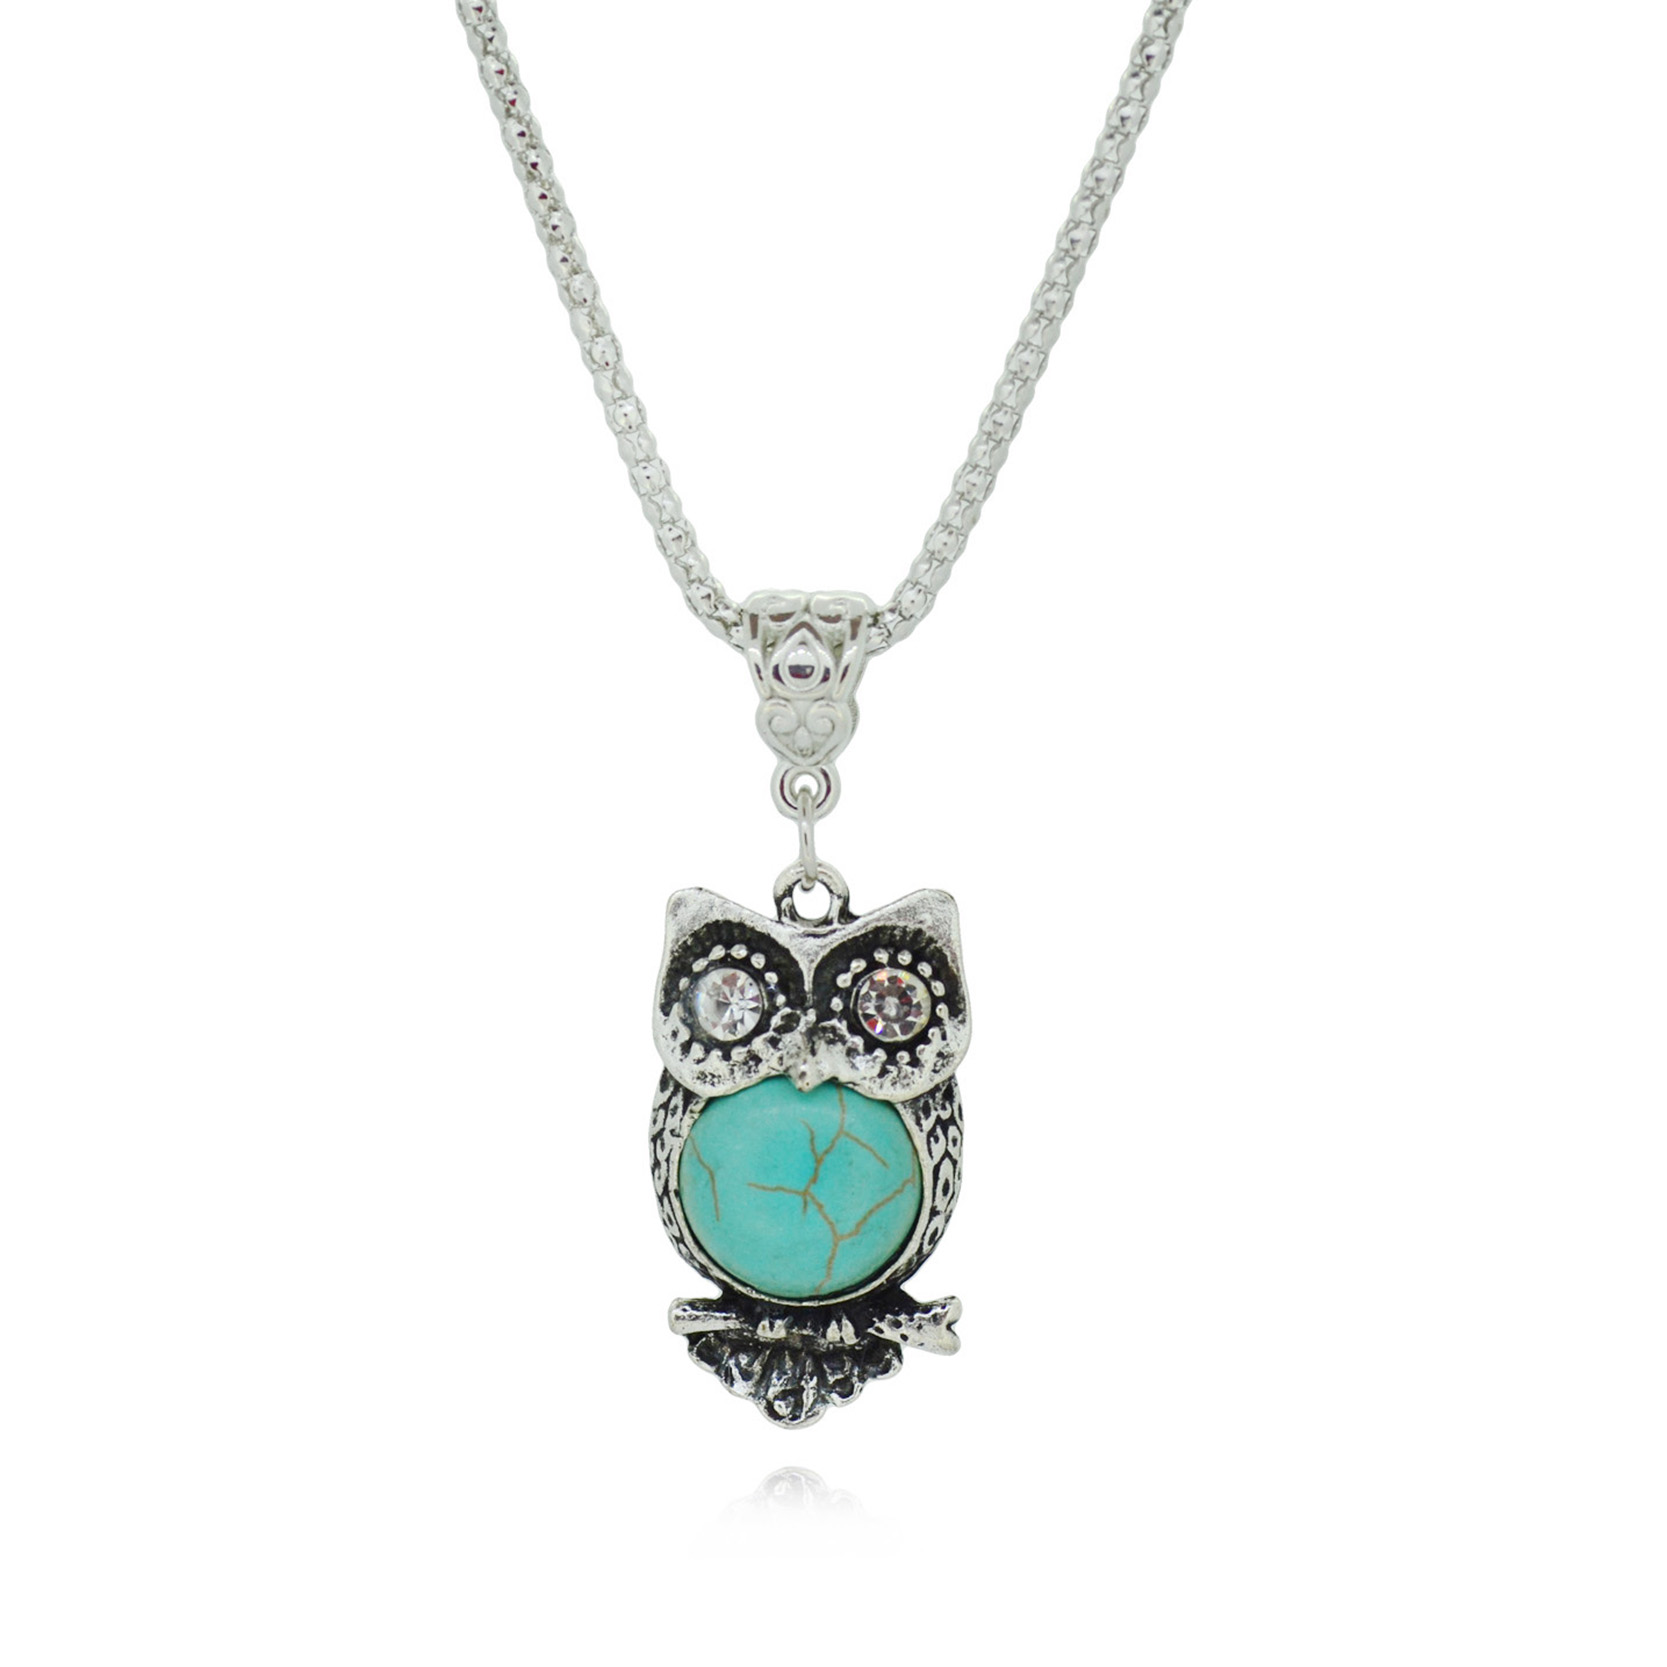 Special Owl Turquoise Necklaces Silver Pendant Accessories for Women Clothing Women's Vintage Style(China (Mainland))